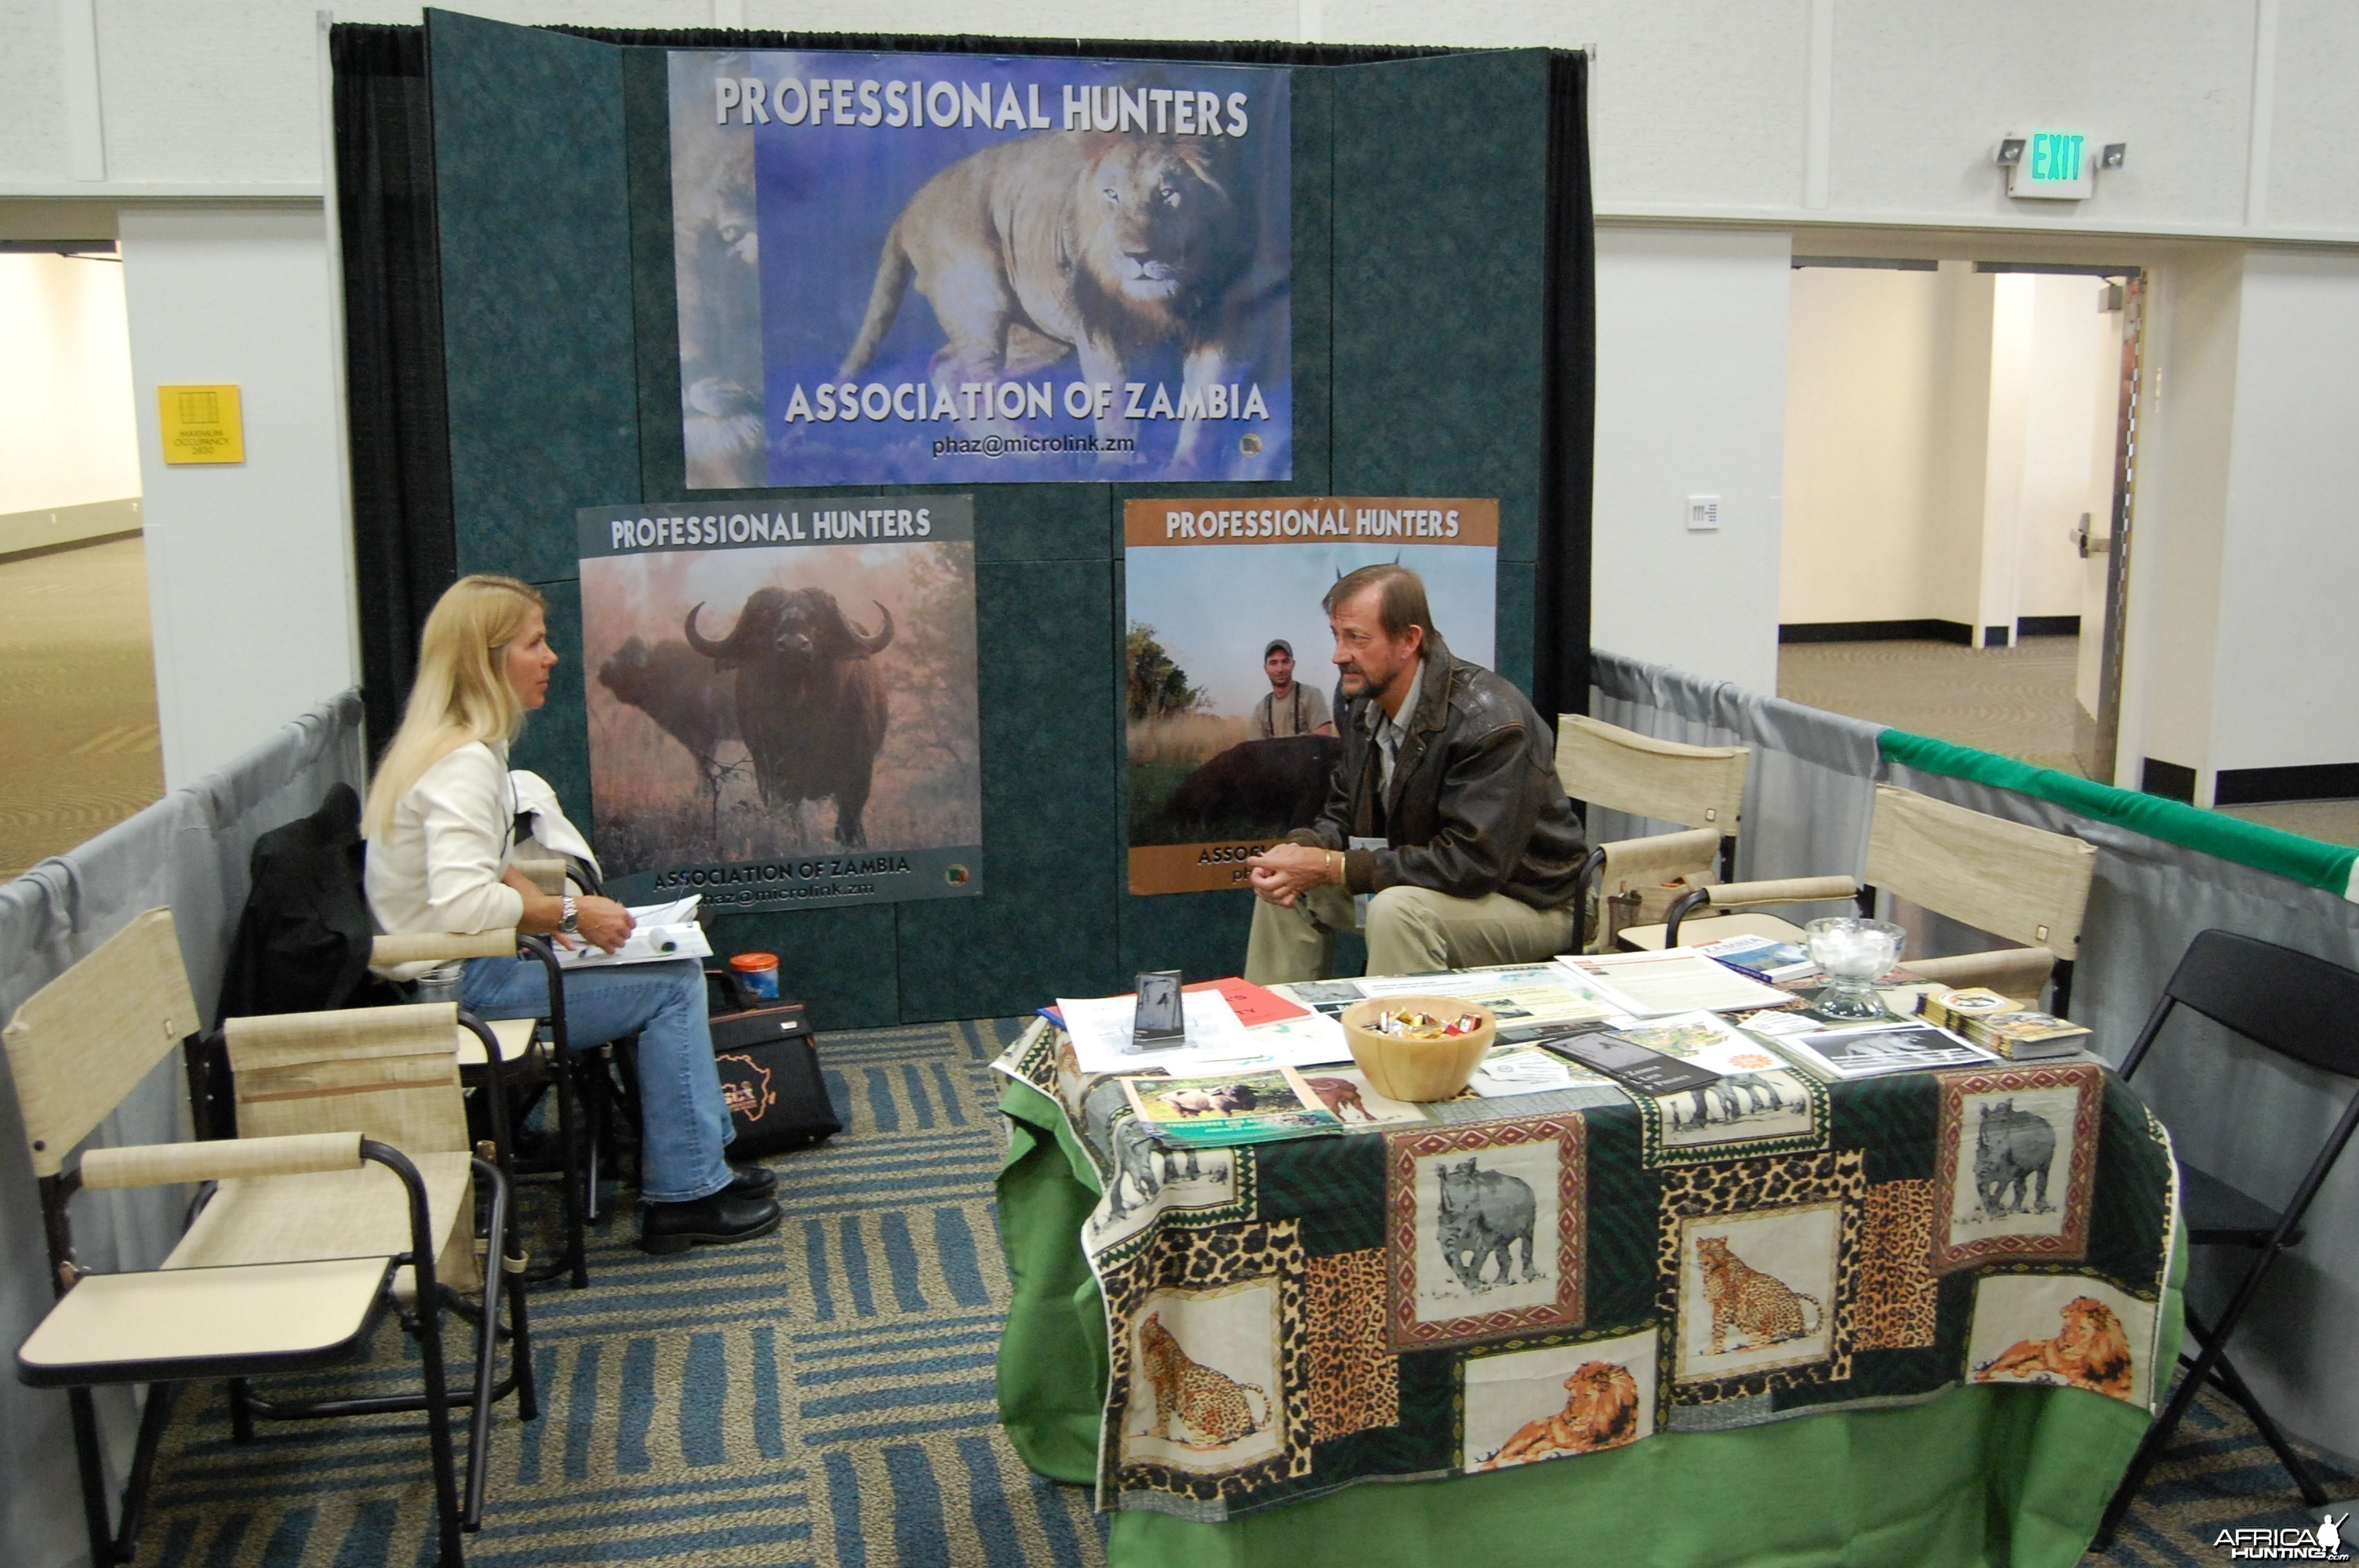 Professional Hunters Association of Zambia